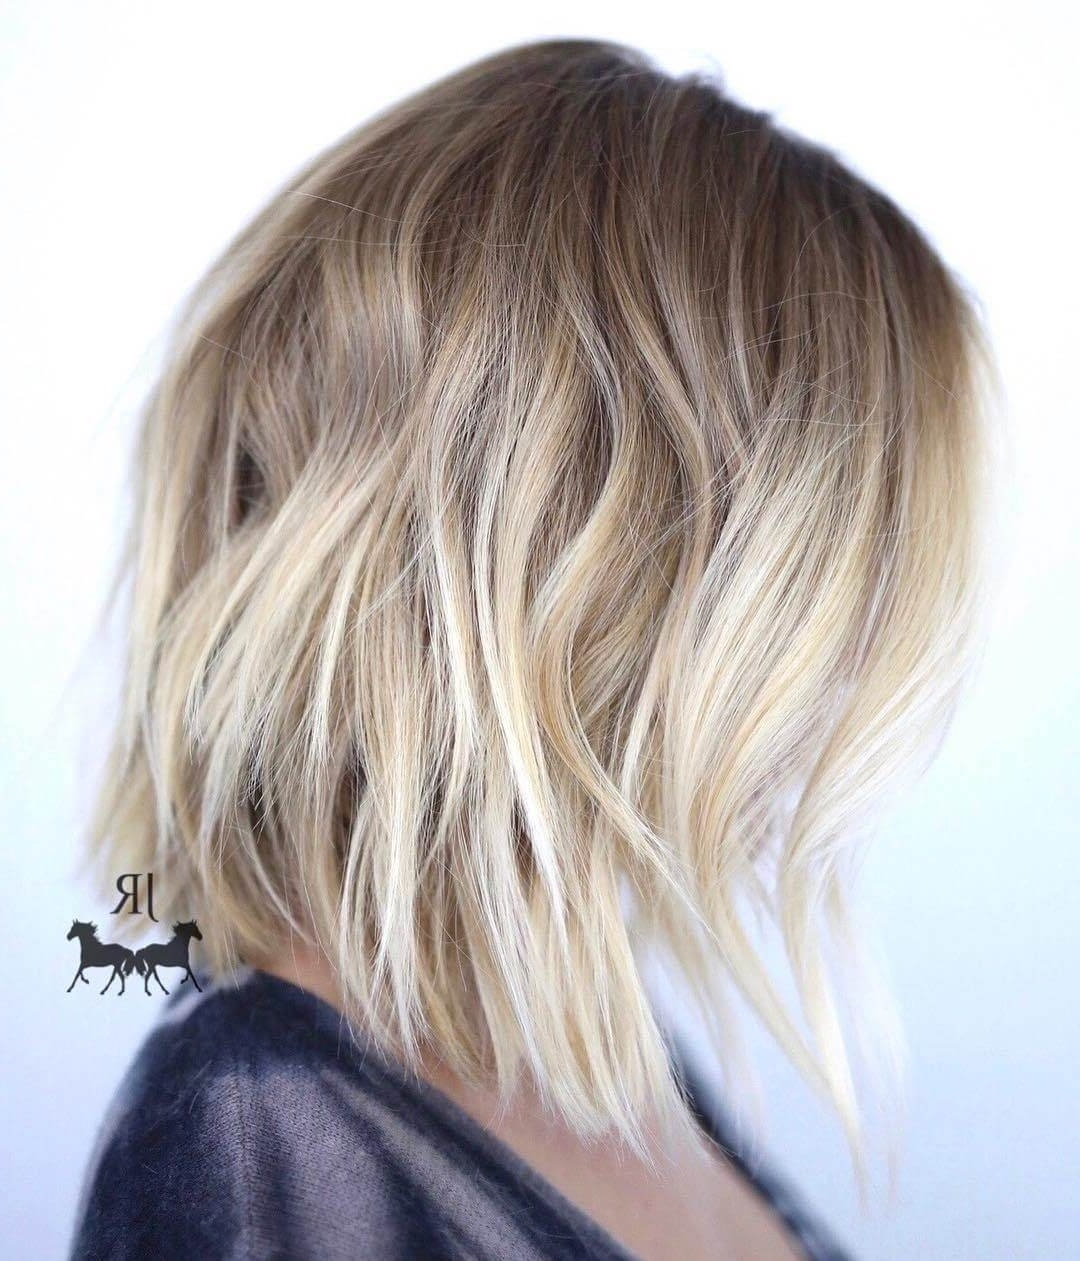 Newest Trendy Angled Blonde Haircuts Inside 50 Fresh Short Blonde Hair Ideas To Update Your Style In (View 15 of 20)